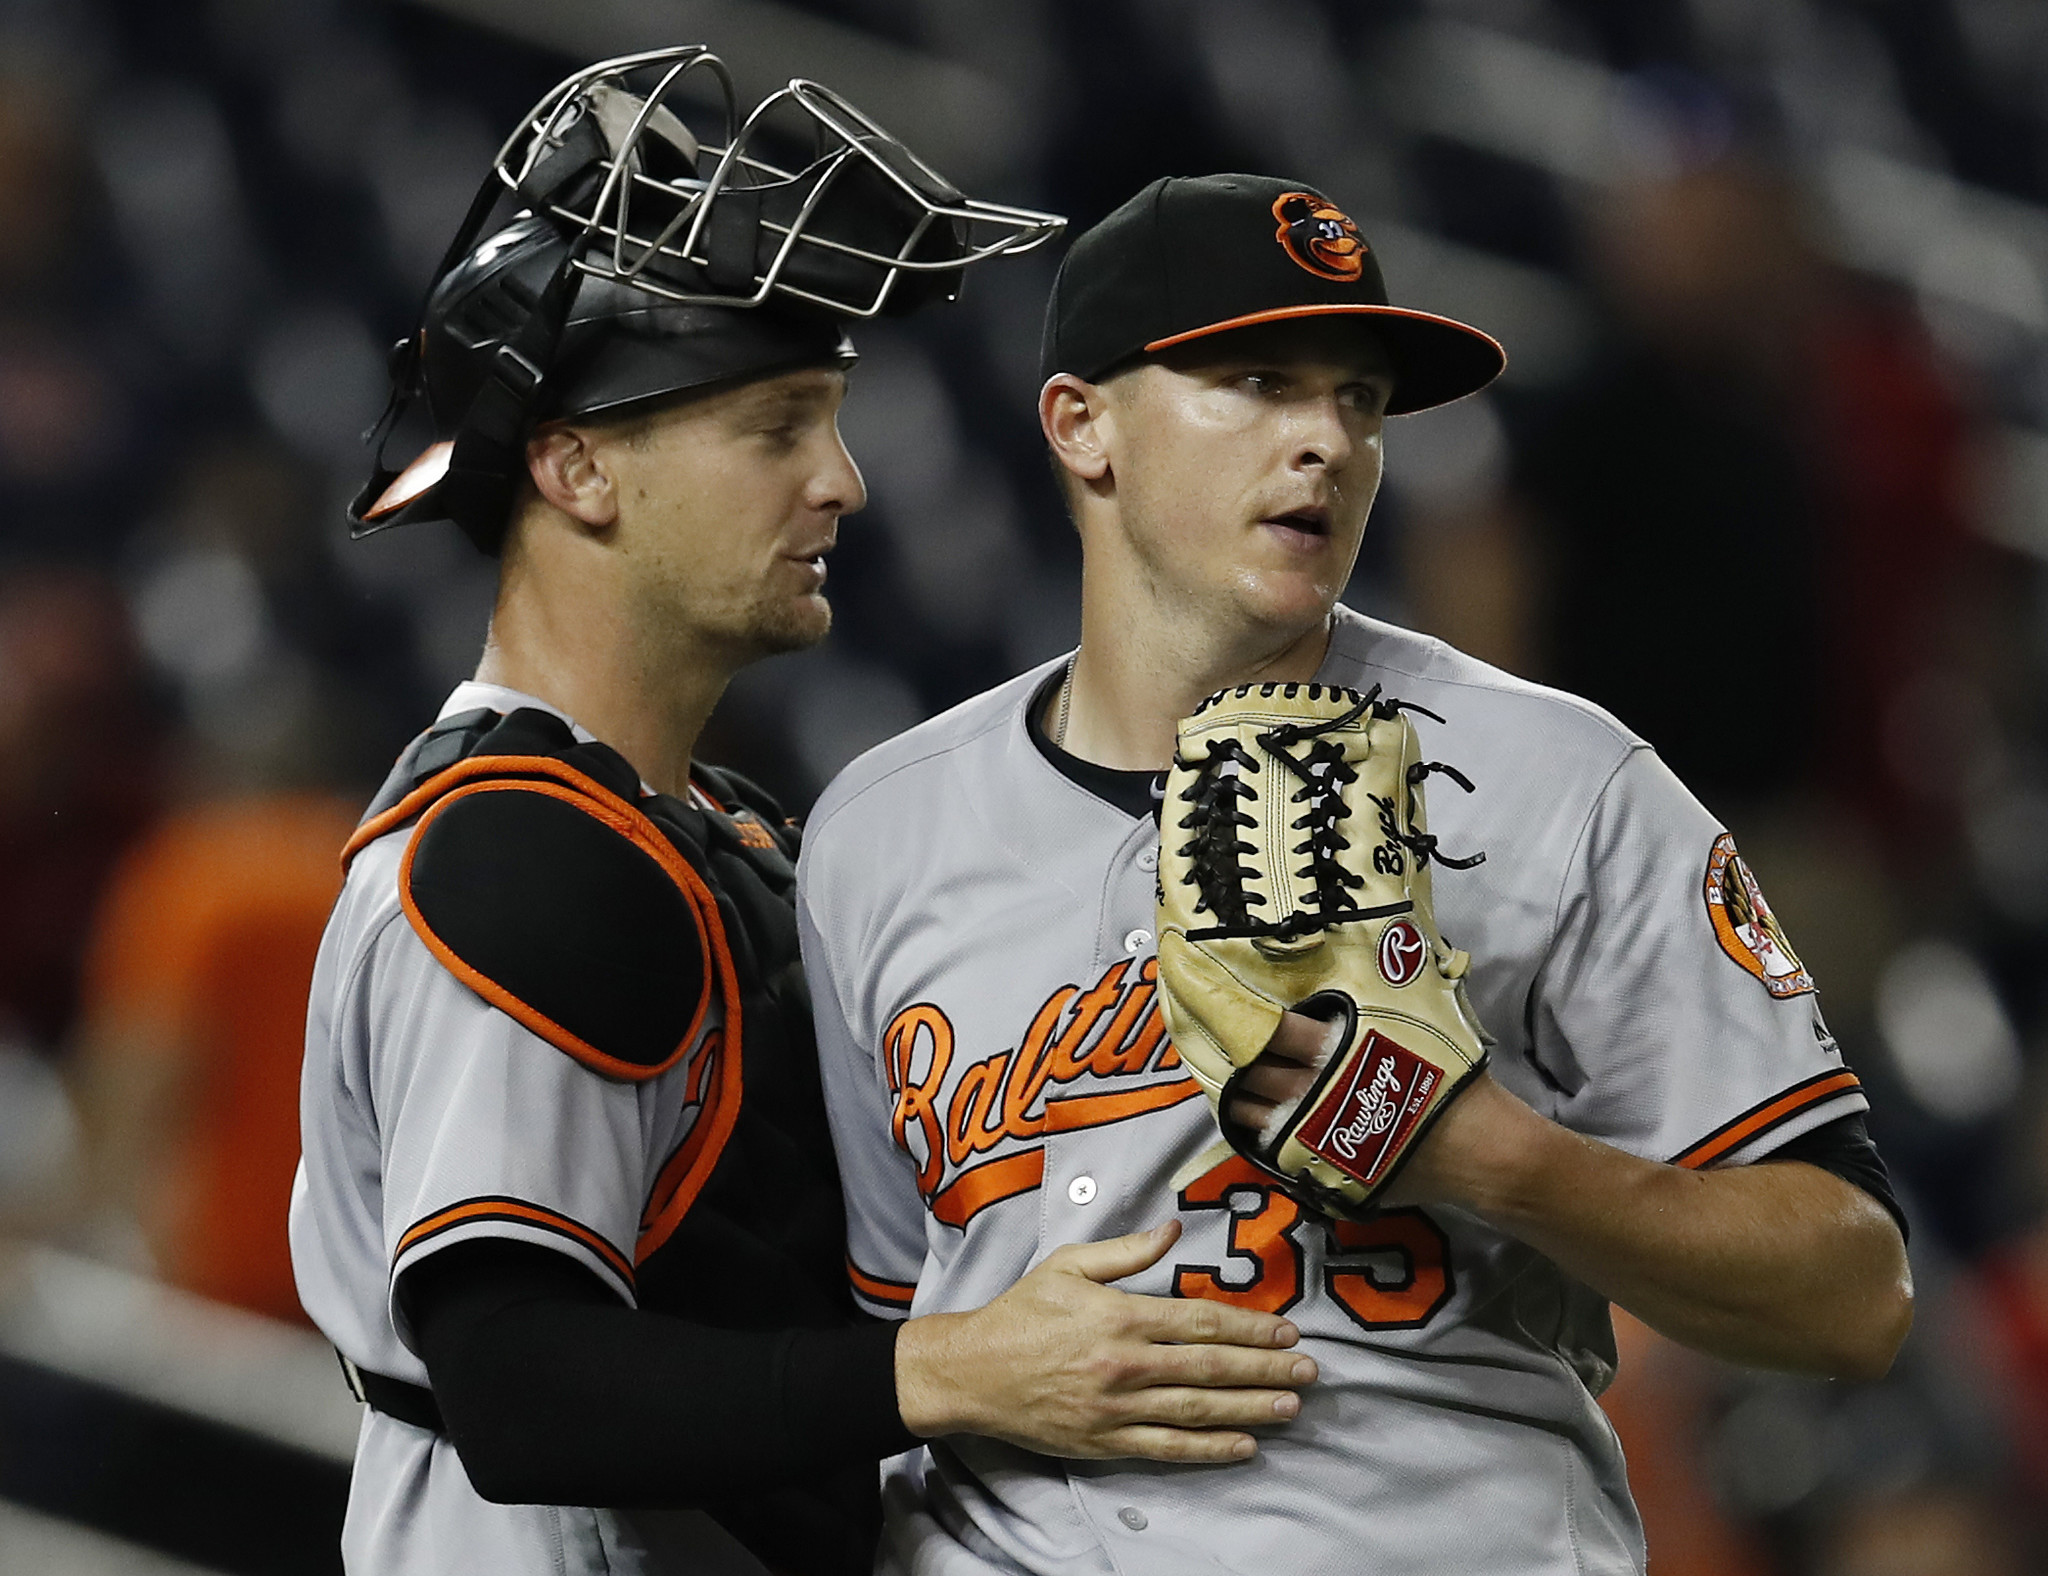 Bal-orioles-rewind-looking-back-at-wednesday-night-s-20180620